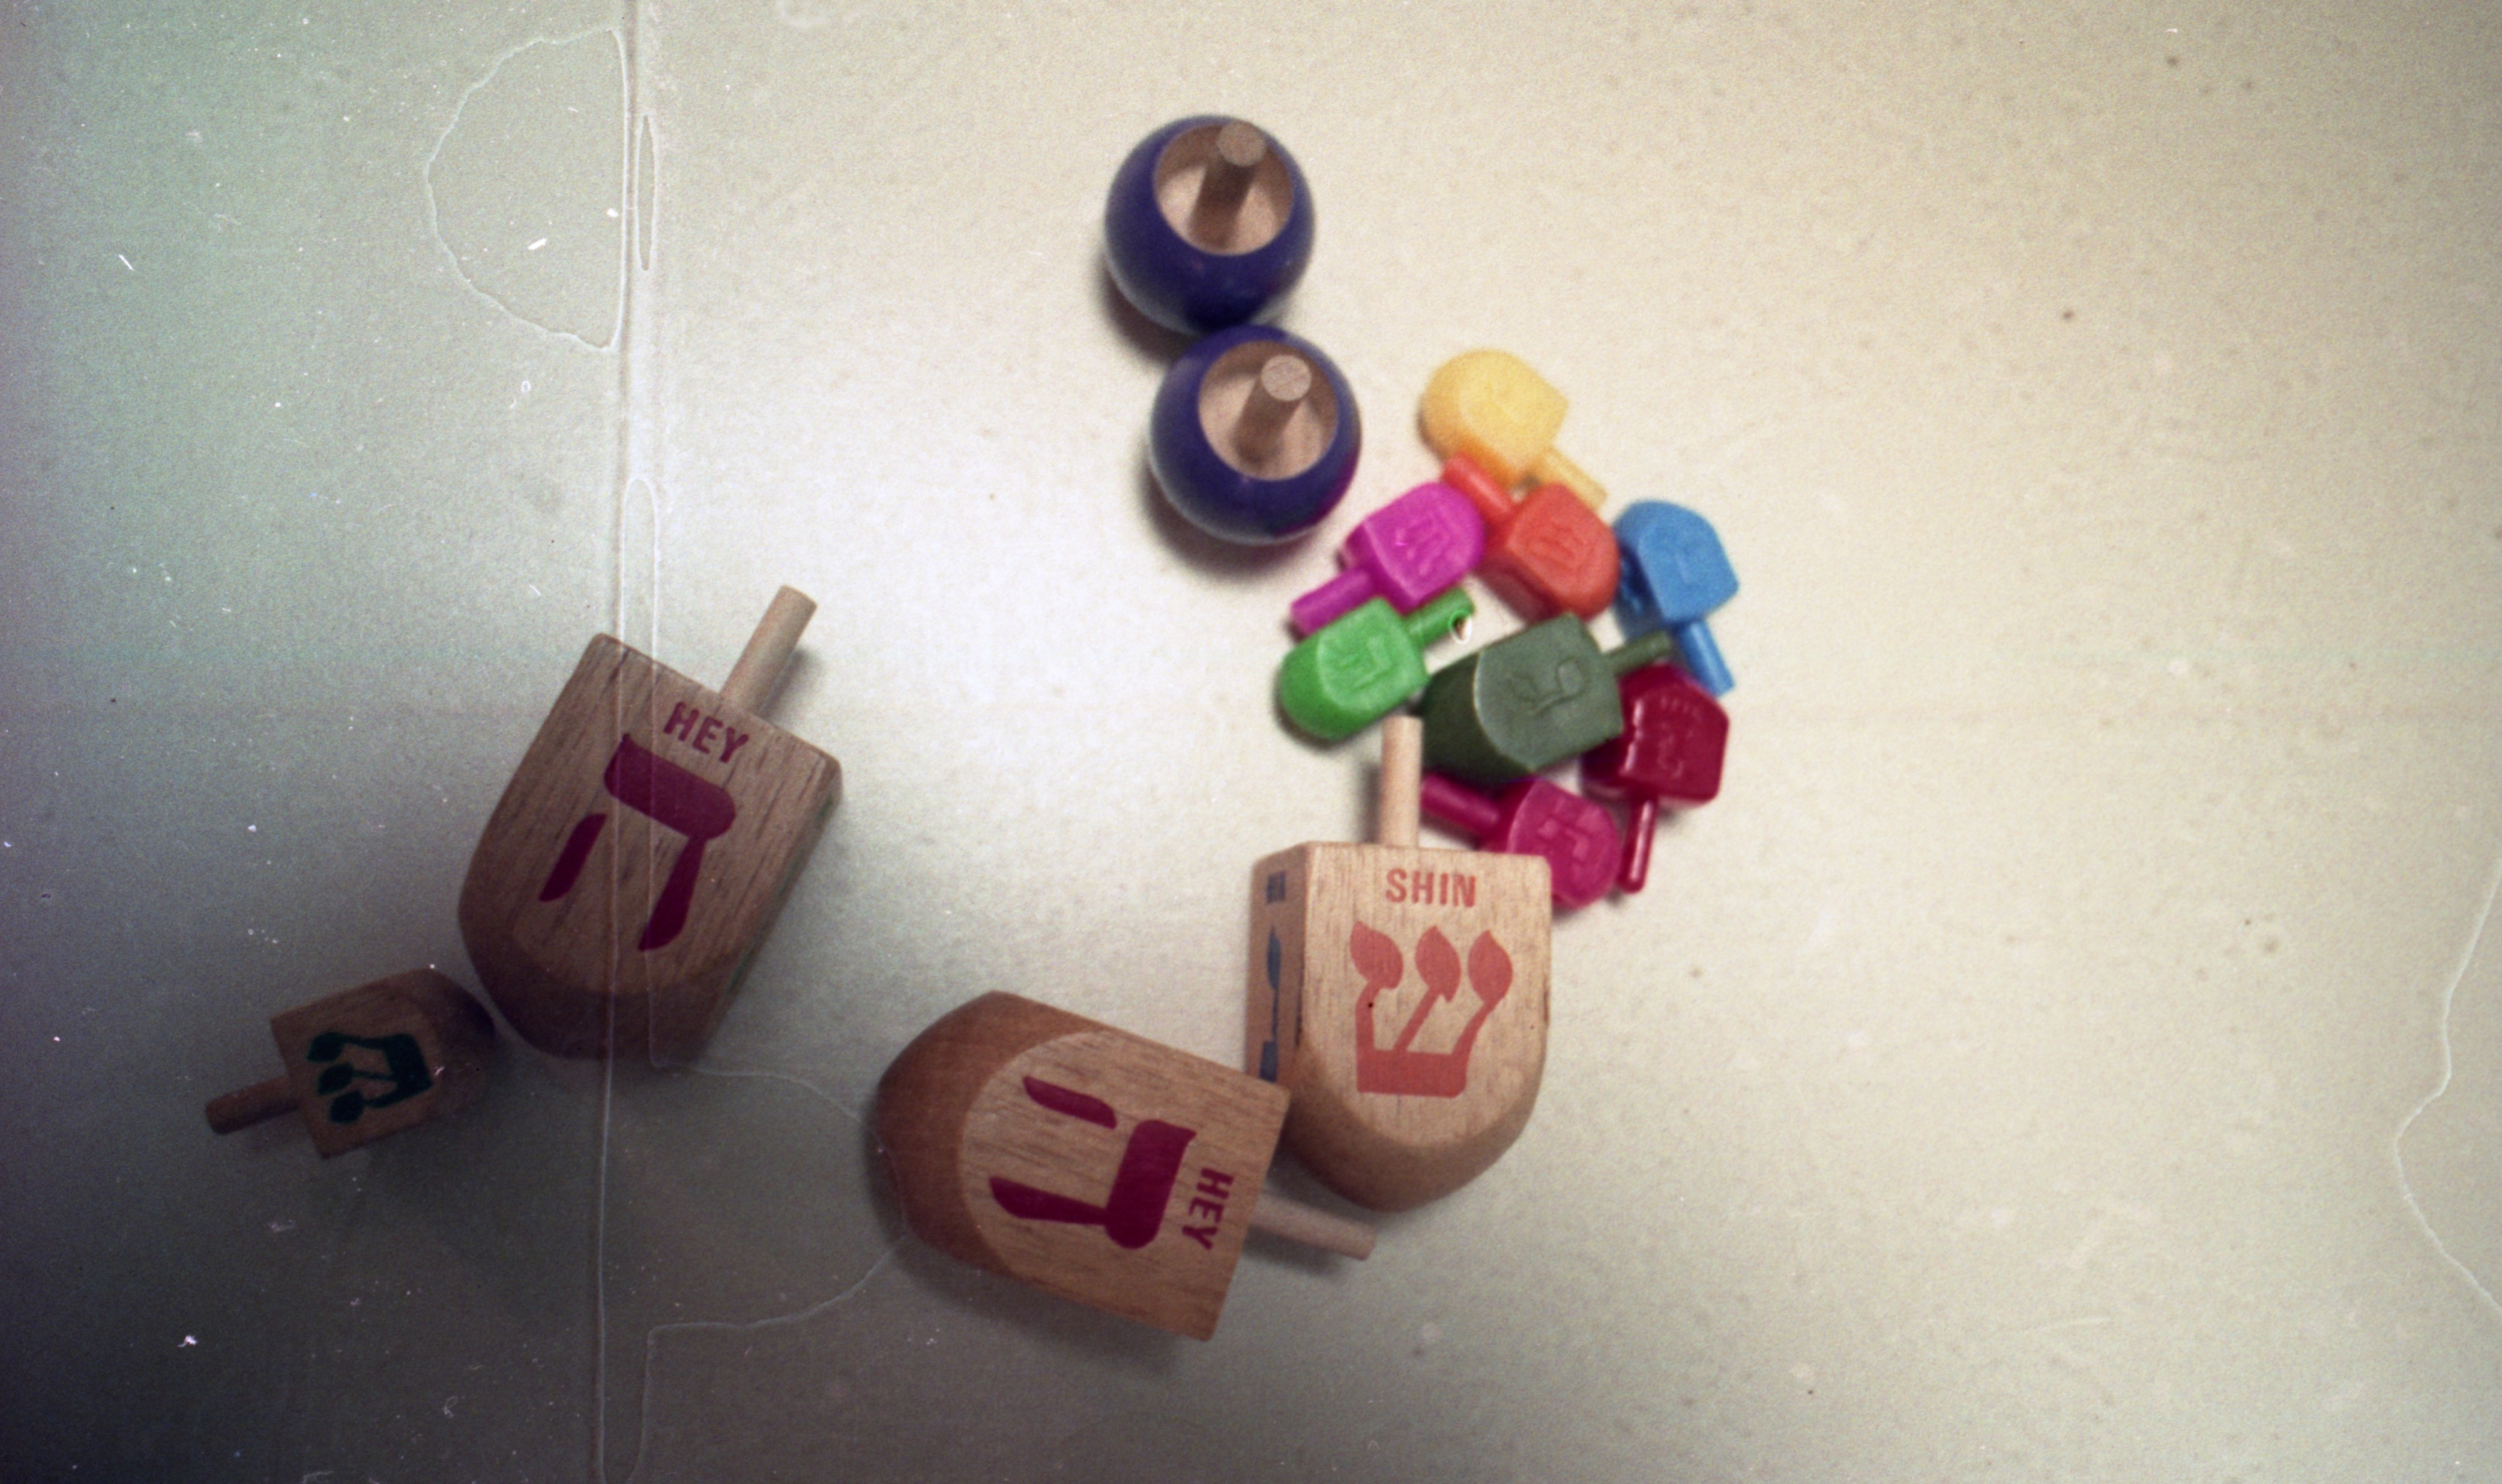 Dreidel Game Pieces For Hanukkah, December 1993 image